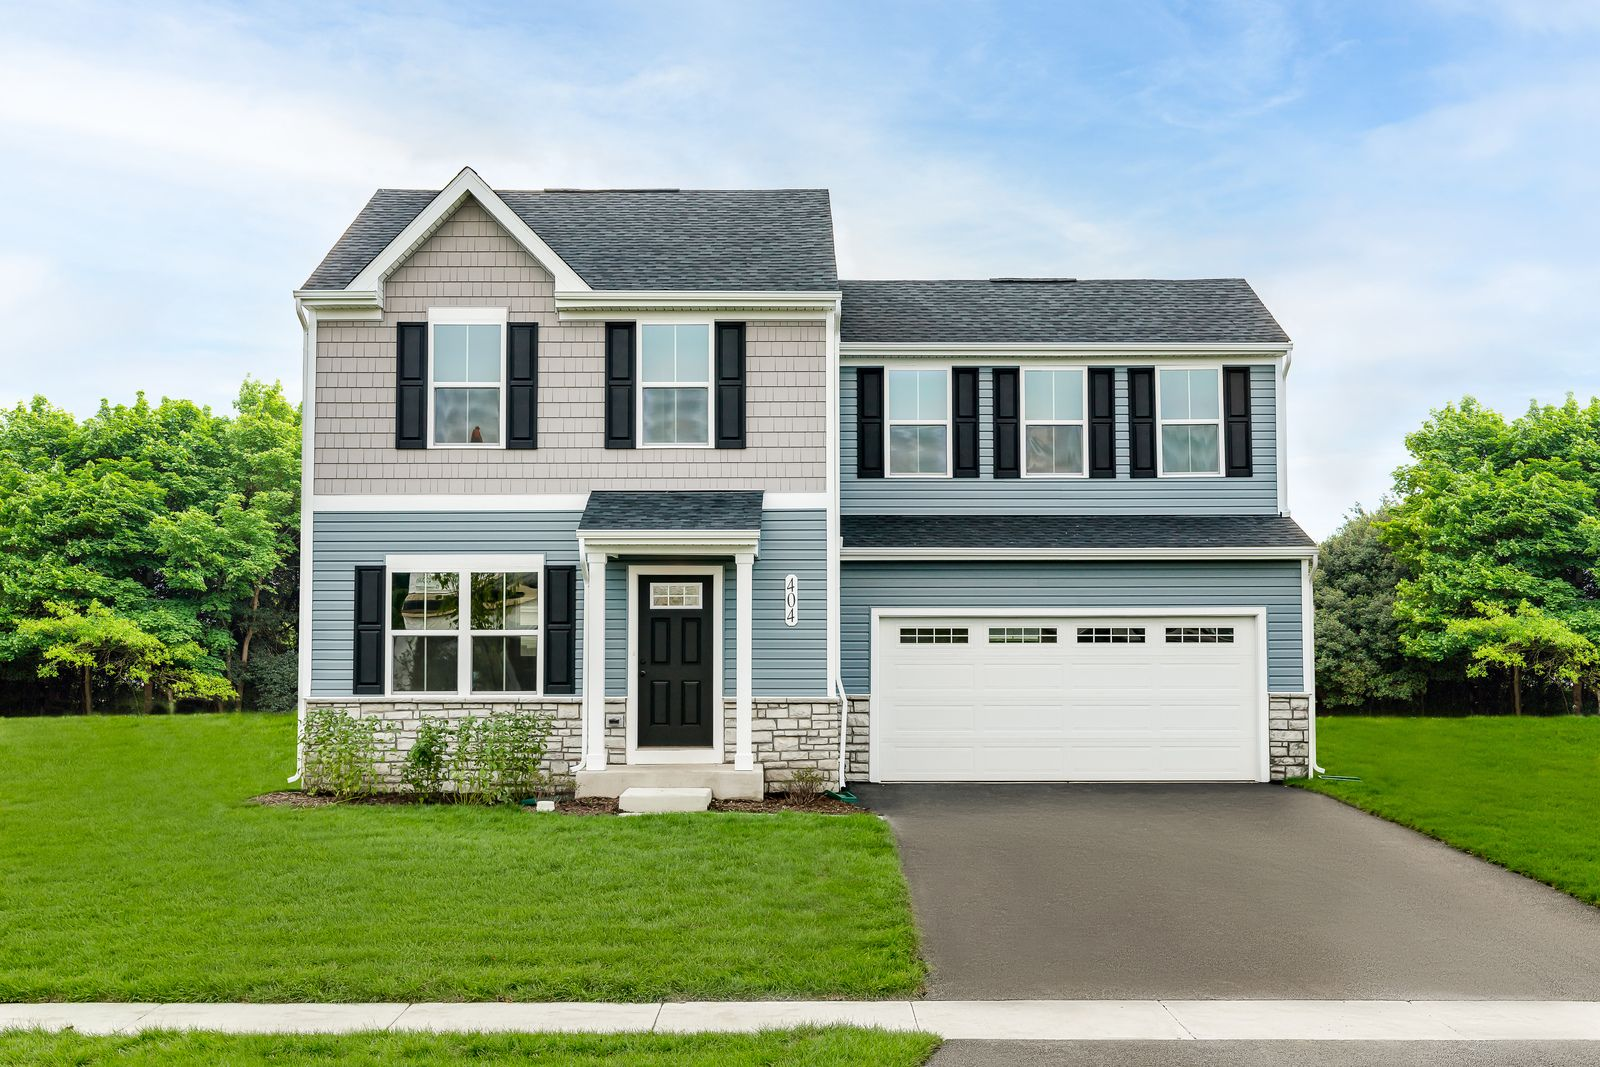 Welcome to Sunset Point - The best value 2-story homes in Joliet!:Choose from homes that offer 3-5 bedrooms, 2-car garage, large backyard, basement, with everything included! Only 3 miles from the Metra & minutes to plenty of commuter routes.Schedule a visit today!